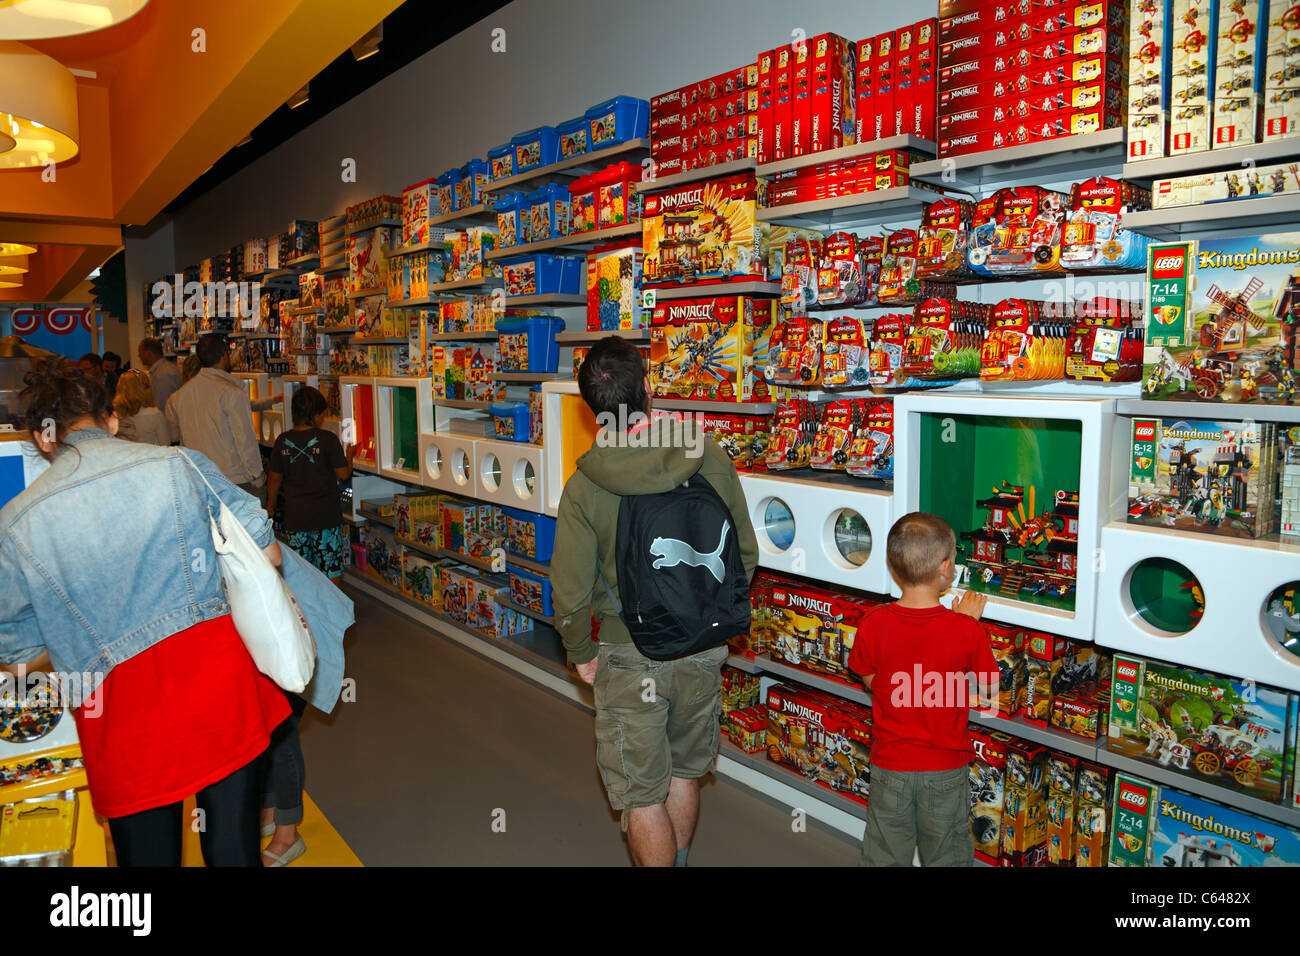 The country's second-largest LEGO Store―only surpassed by the Disney Springs location in Orlando, Florida―is a fanciful space filled with impressive displays, interactive play areas and a .